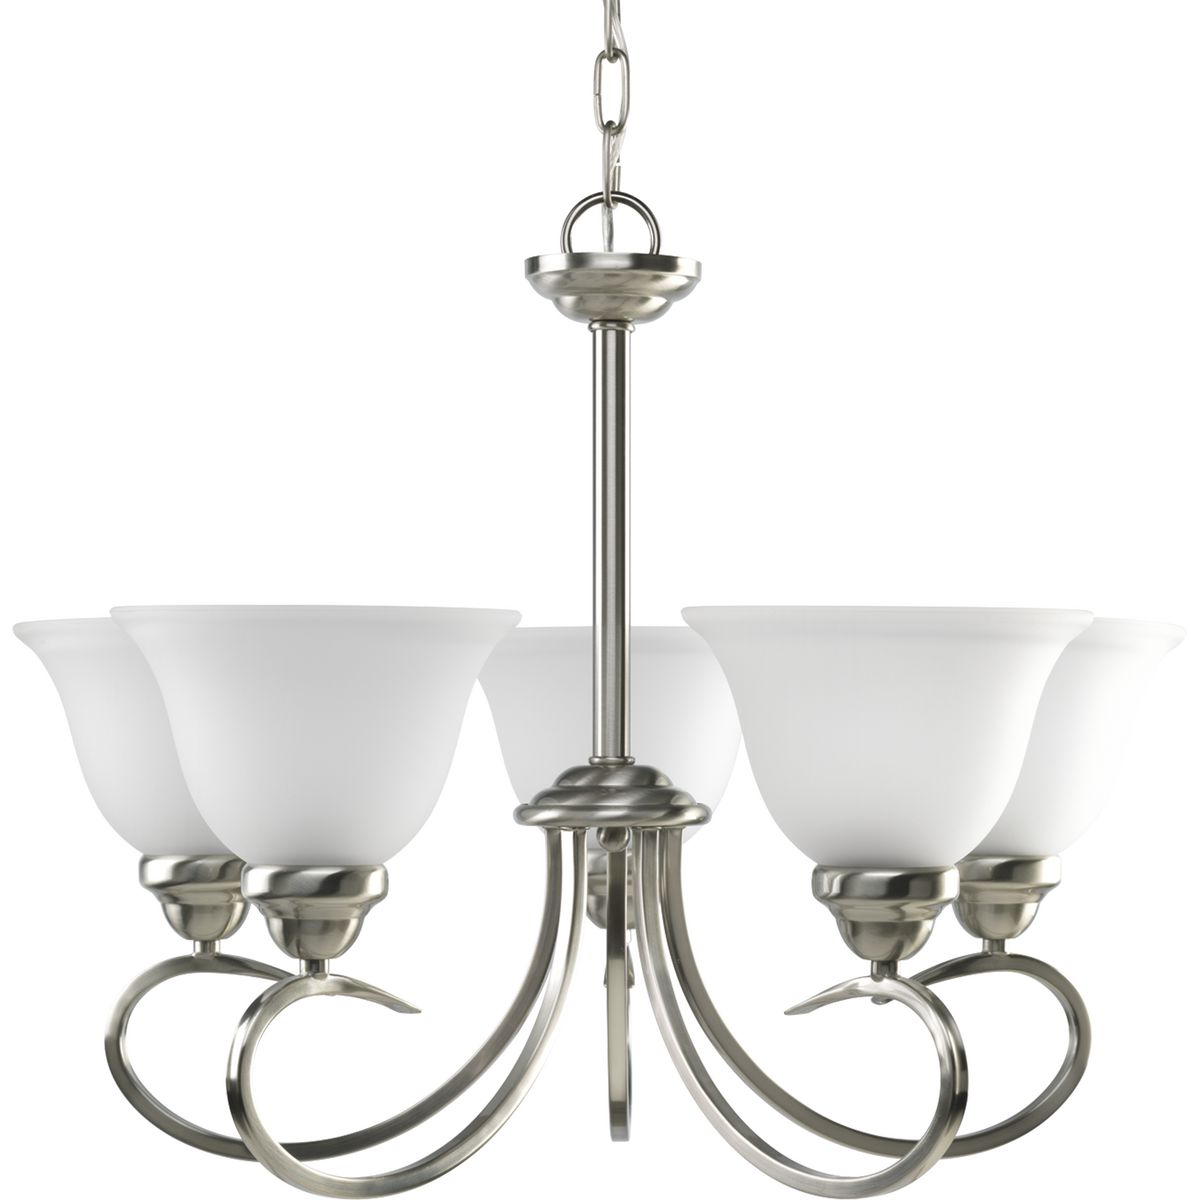 Five light chandelier brand homestyle lighting hshs4100509prodimage aloadofball Image collections